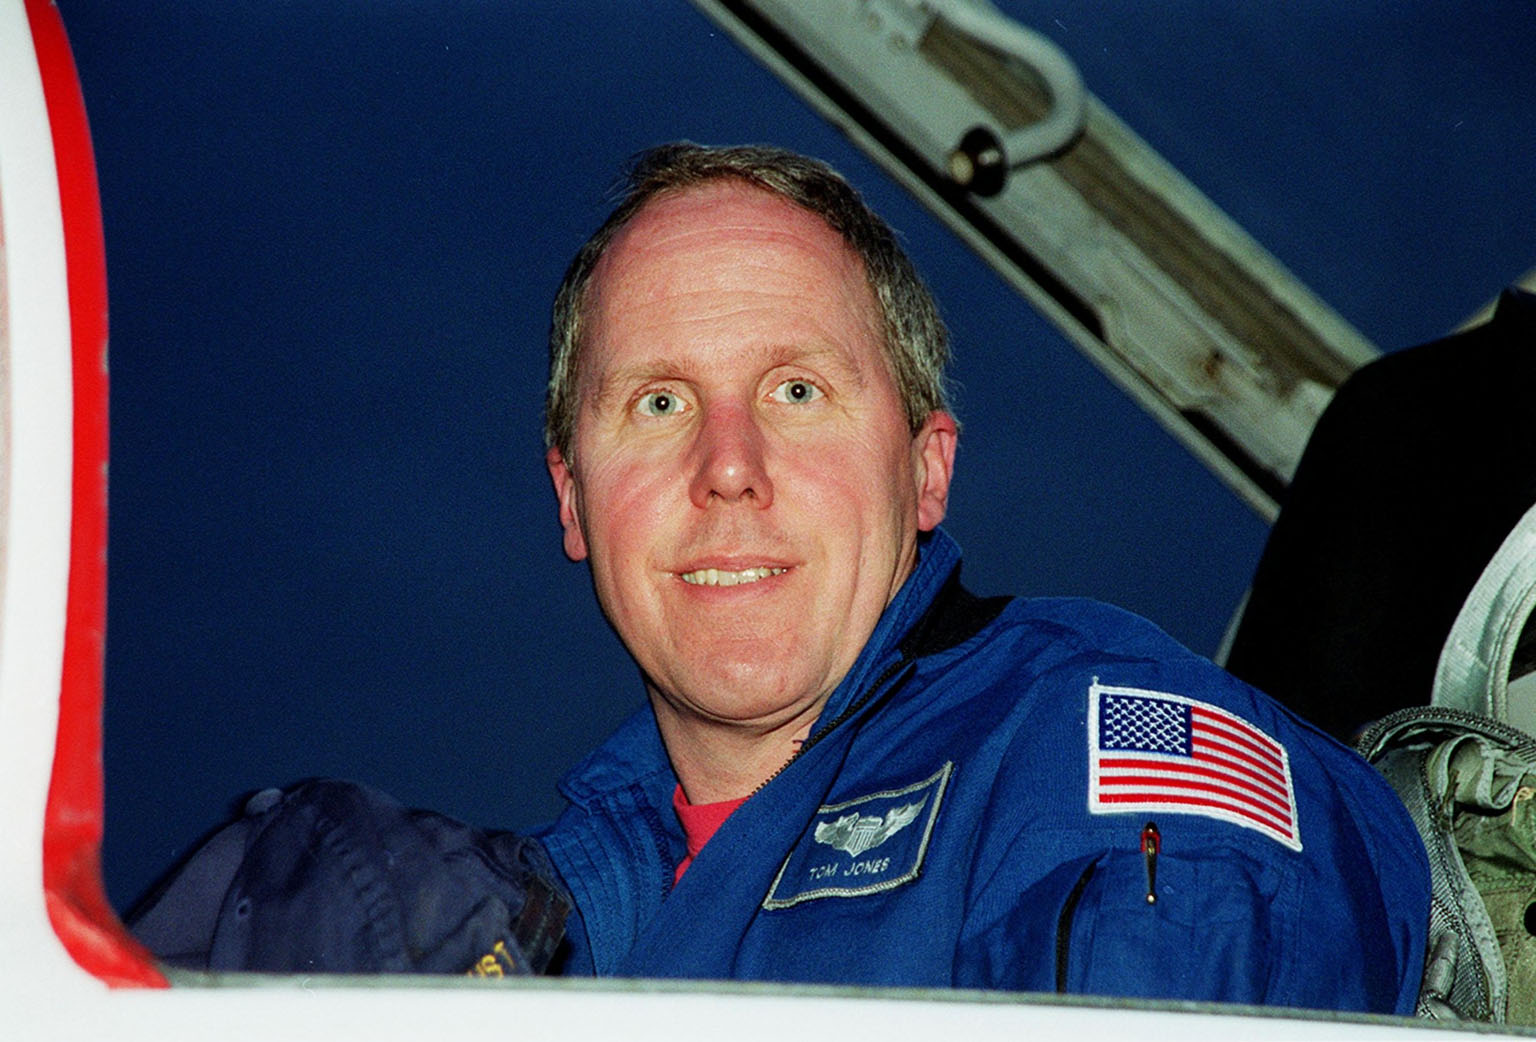 STS-98 Mission Specialist Thomas Jones happily arrives at KSC?s Shuttle Landing Facility for Terminal Countdown Test Activities. In preparation for the Jan. 19 launch, he and the rest of the crew Commander Ken Cockrell, Pilot Mark Polansky and Mission Specialists Robert Curbeam and Marsha Ivins will be training in emergency procedures from the pad, checking the payload and taking part in a simulated countdown. The payload for the mission is the U.S. Lab Destiny, a key element in the construction of the International Space Station. The lab has five system racks already installed inside the module. After delivery of electronics in the lab, electrically powered attitude control for Control Moment Gyroscopes will be activated. STS-98 is the seventh construction flight to the ISS.